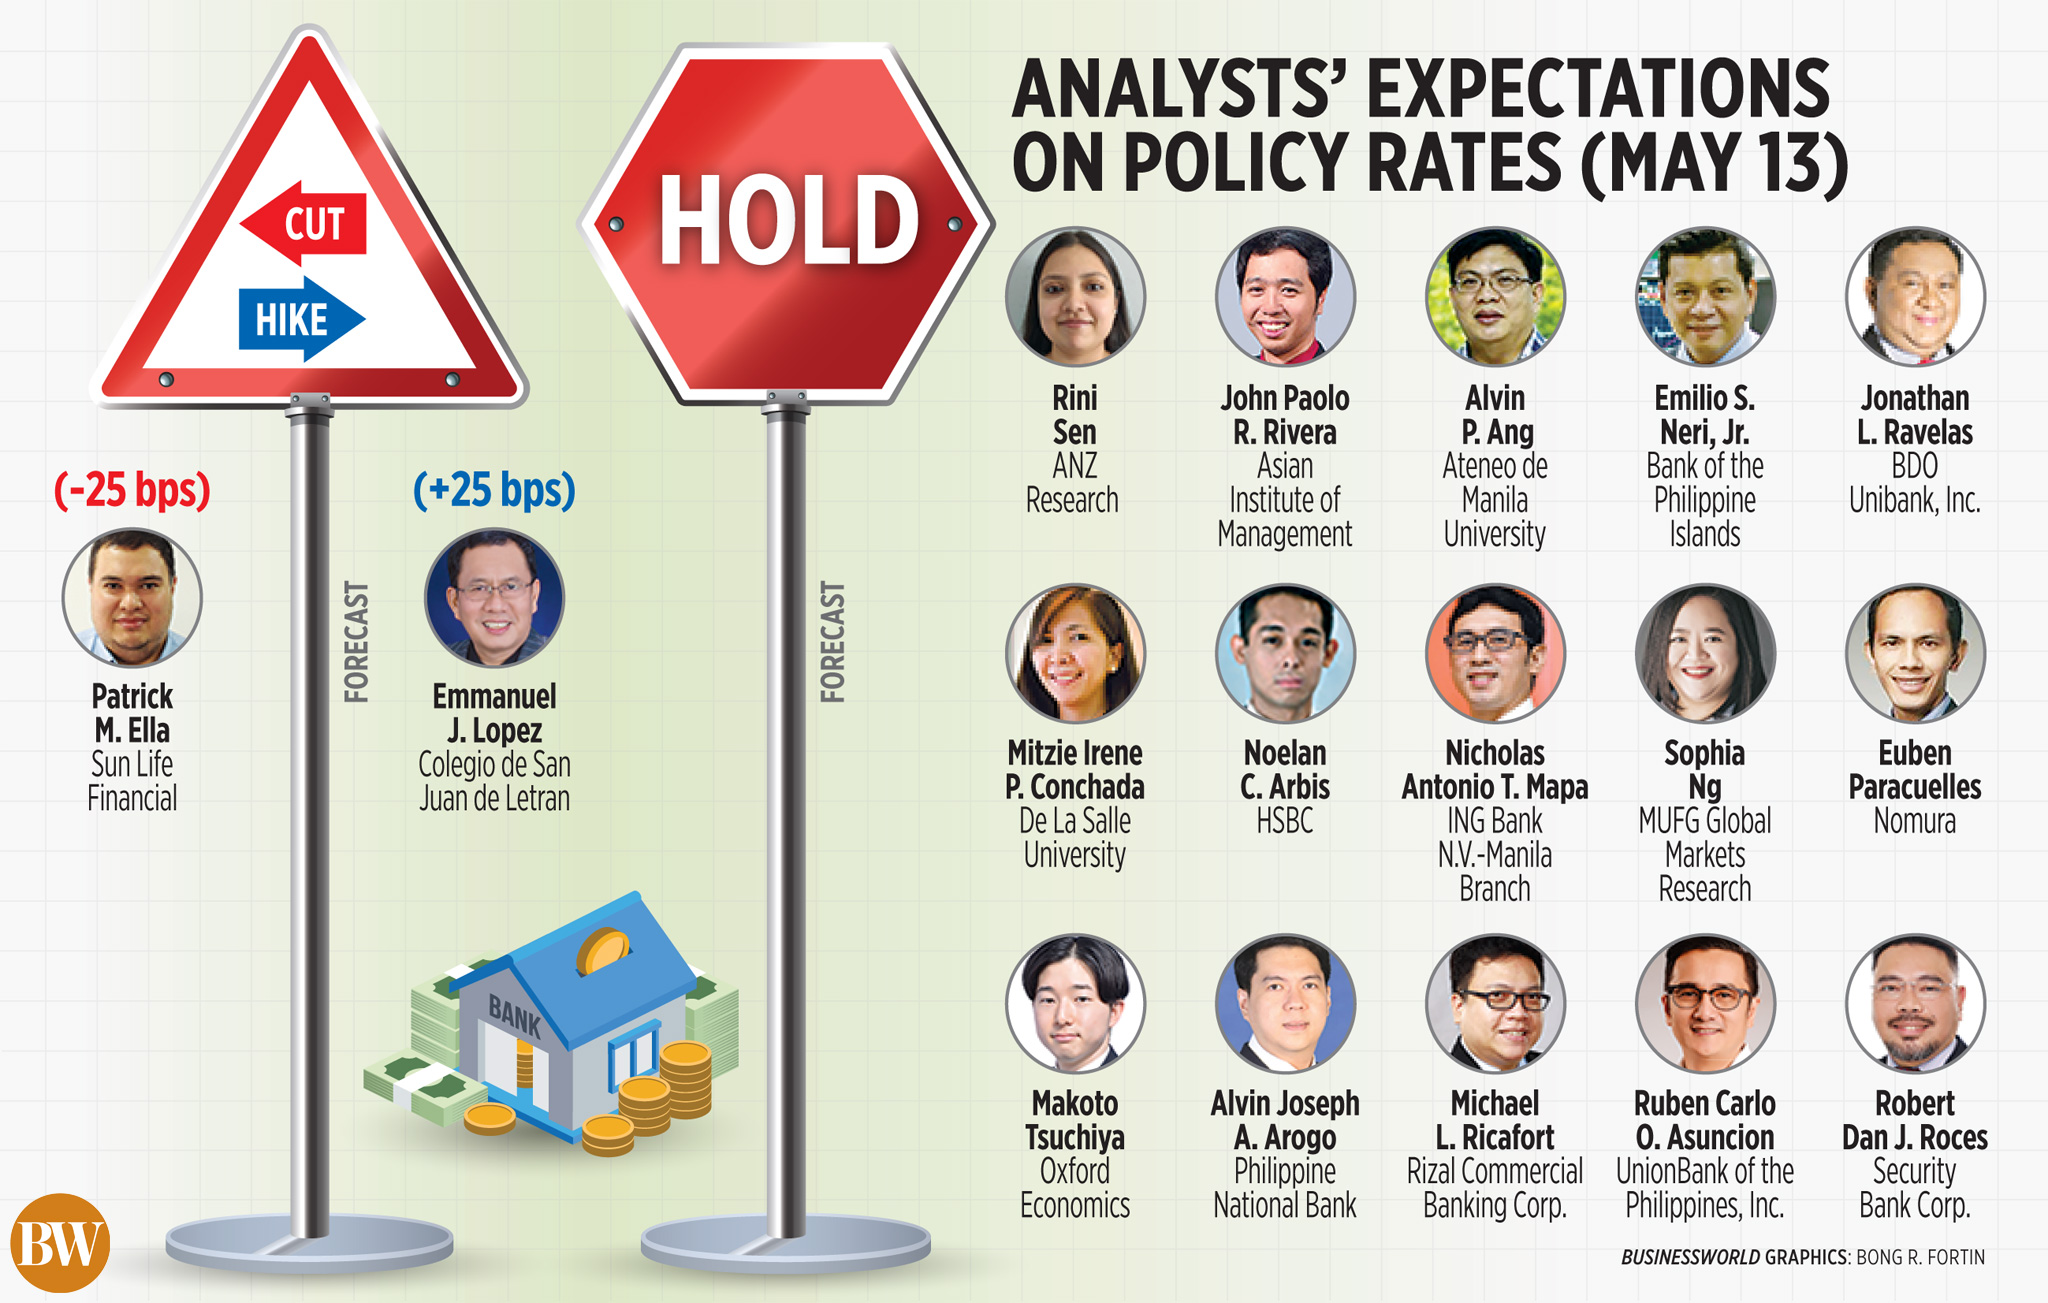 Analysts' expectations on policy rates (May 13)